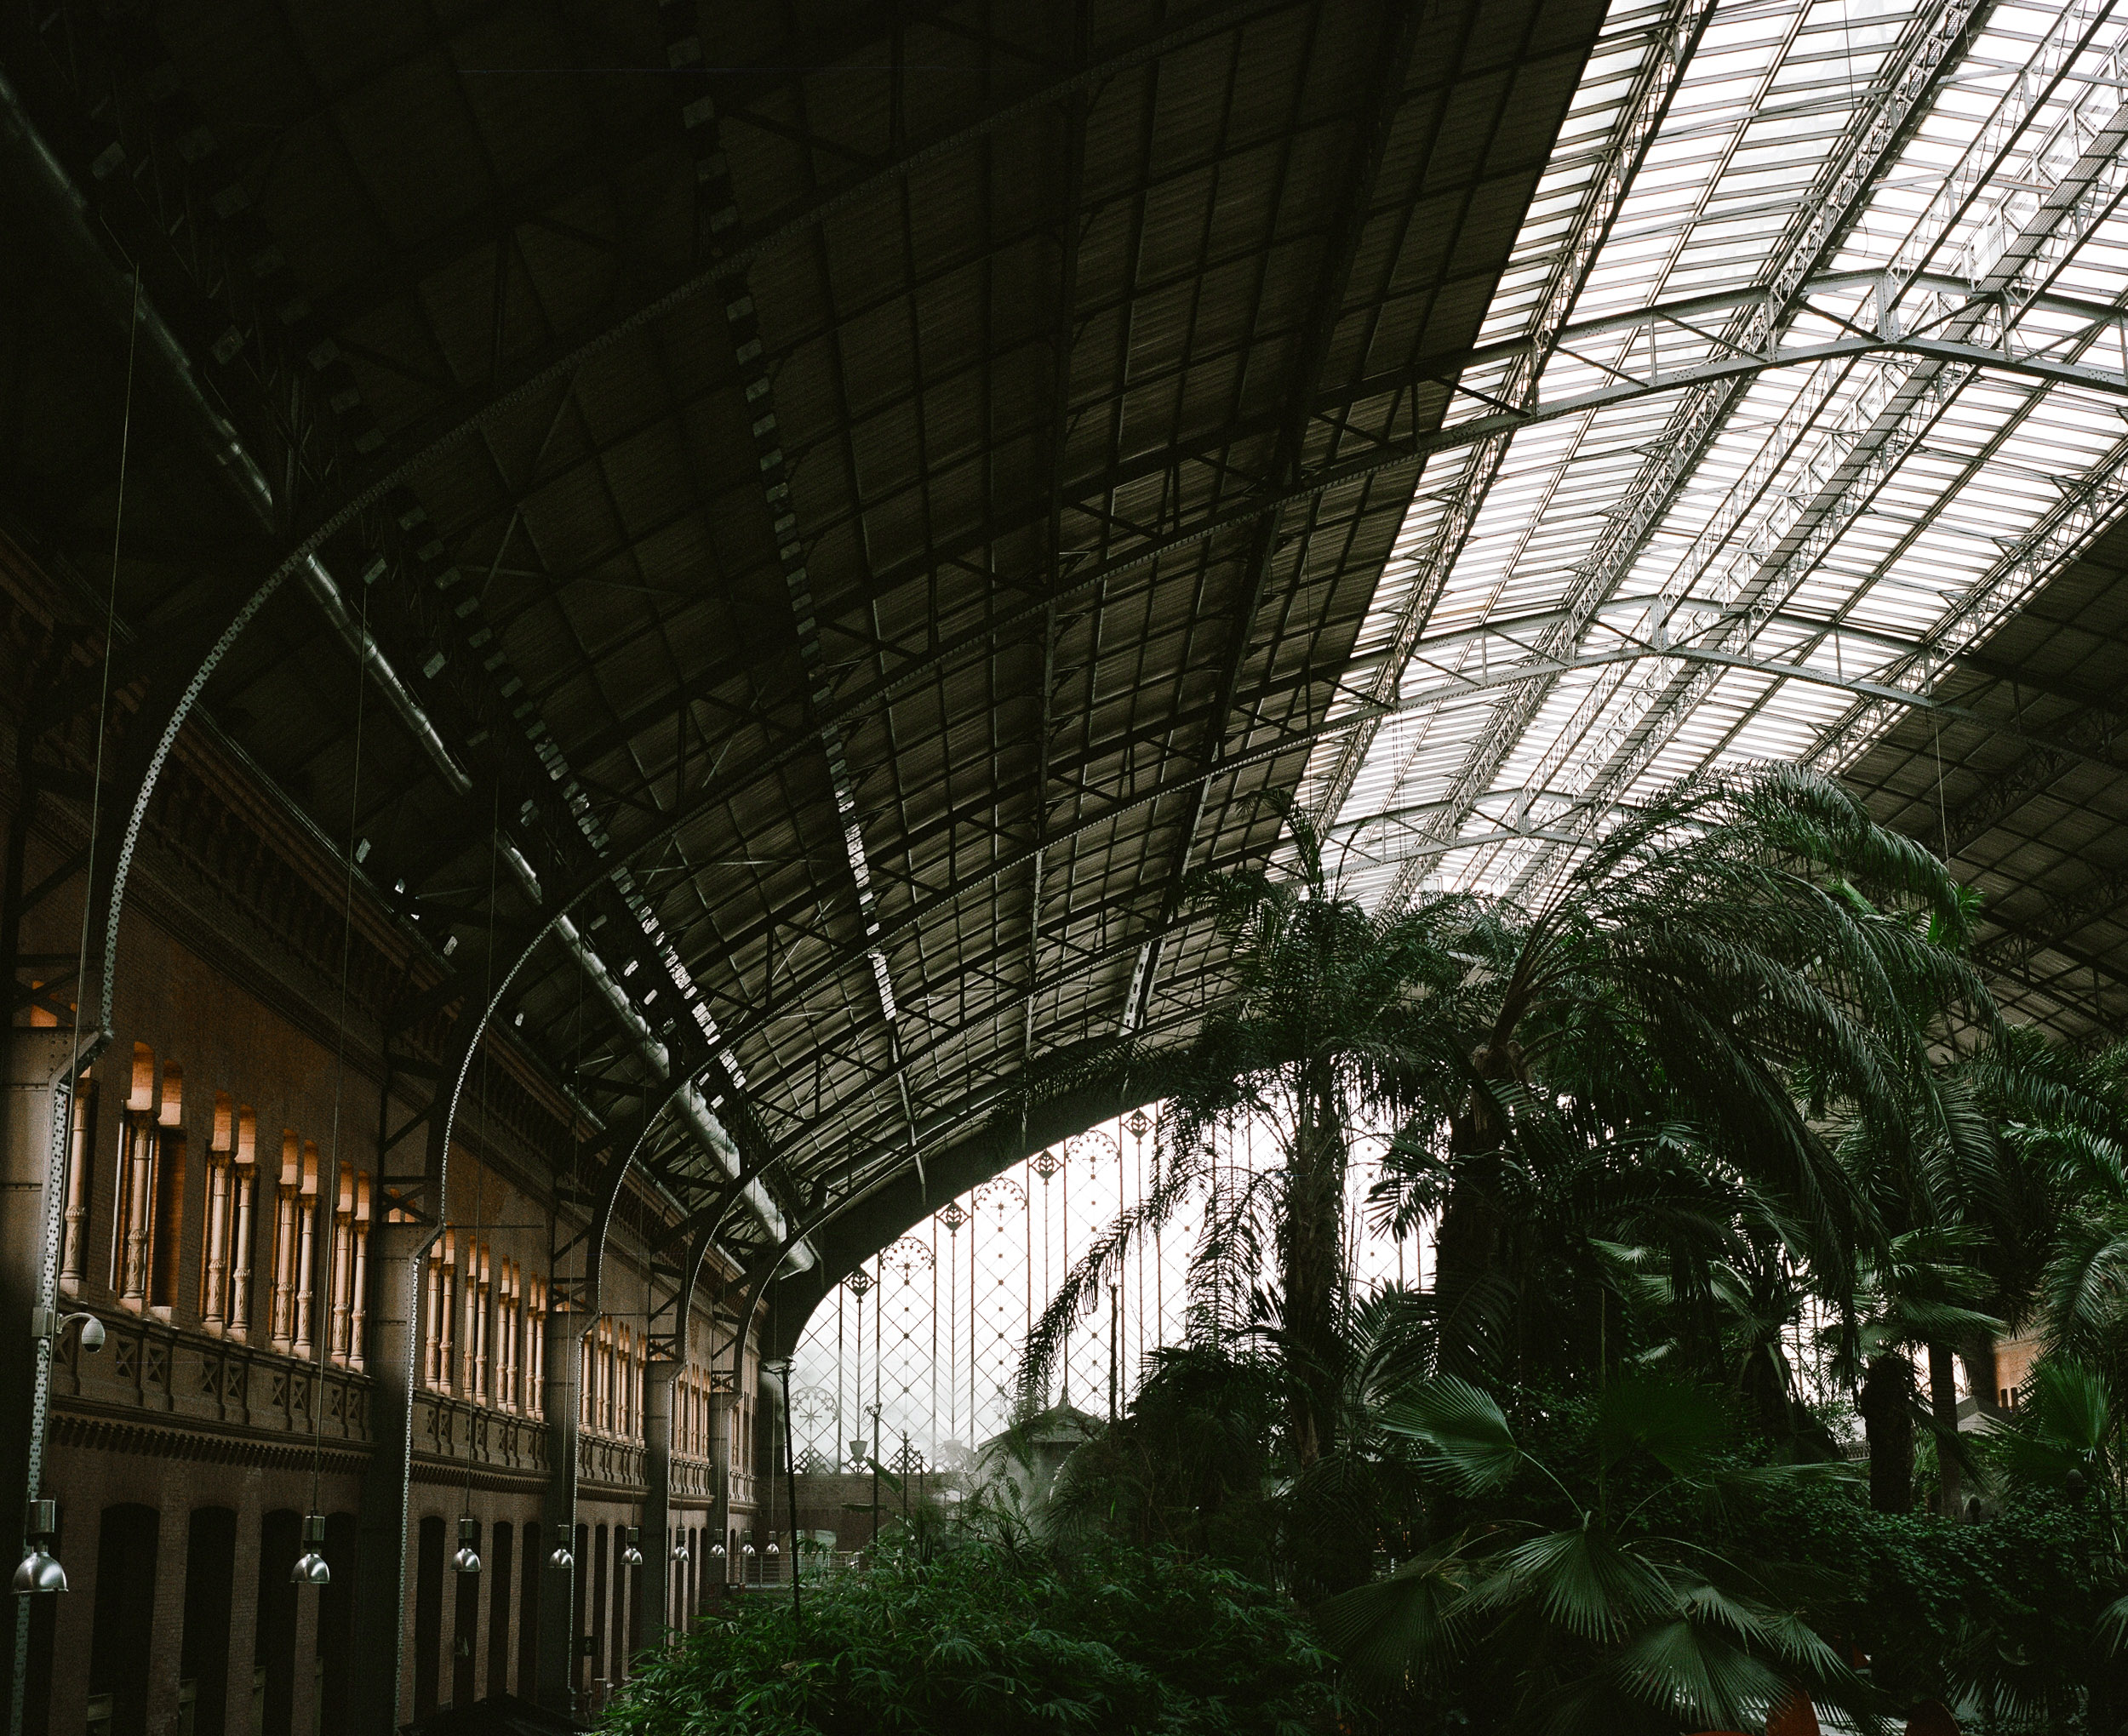 Train Station in Madrid, Palm trees, Glass roof